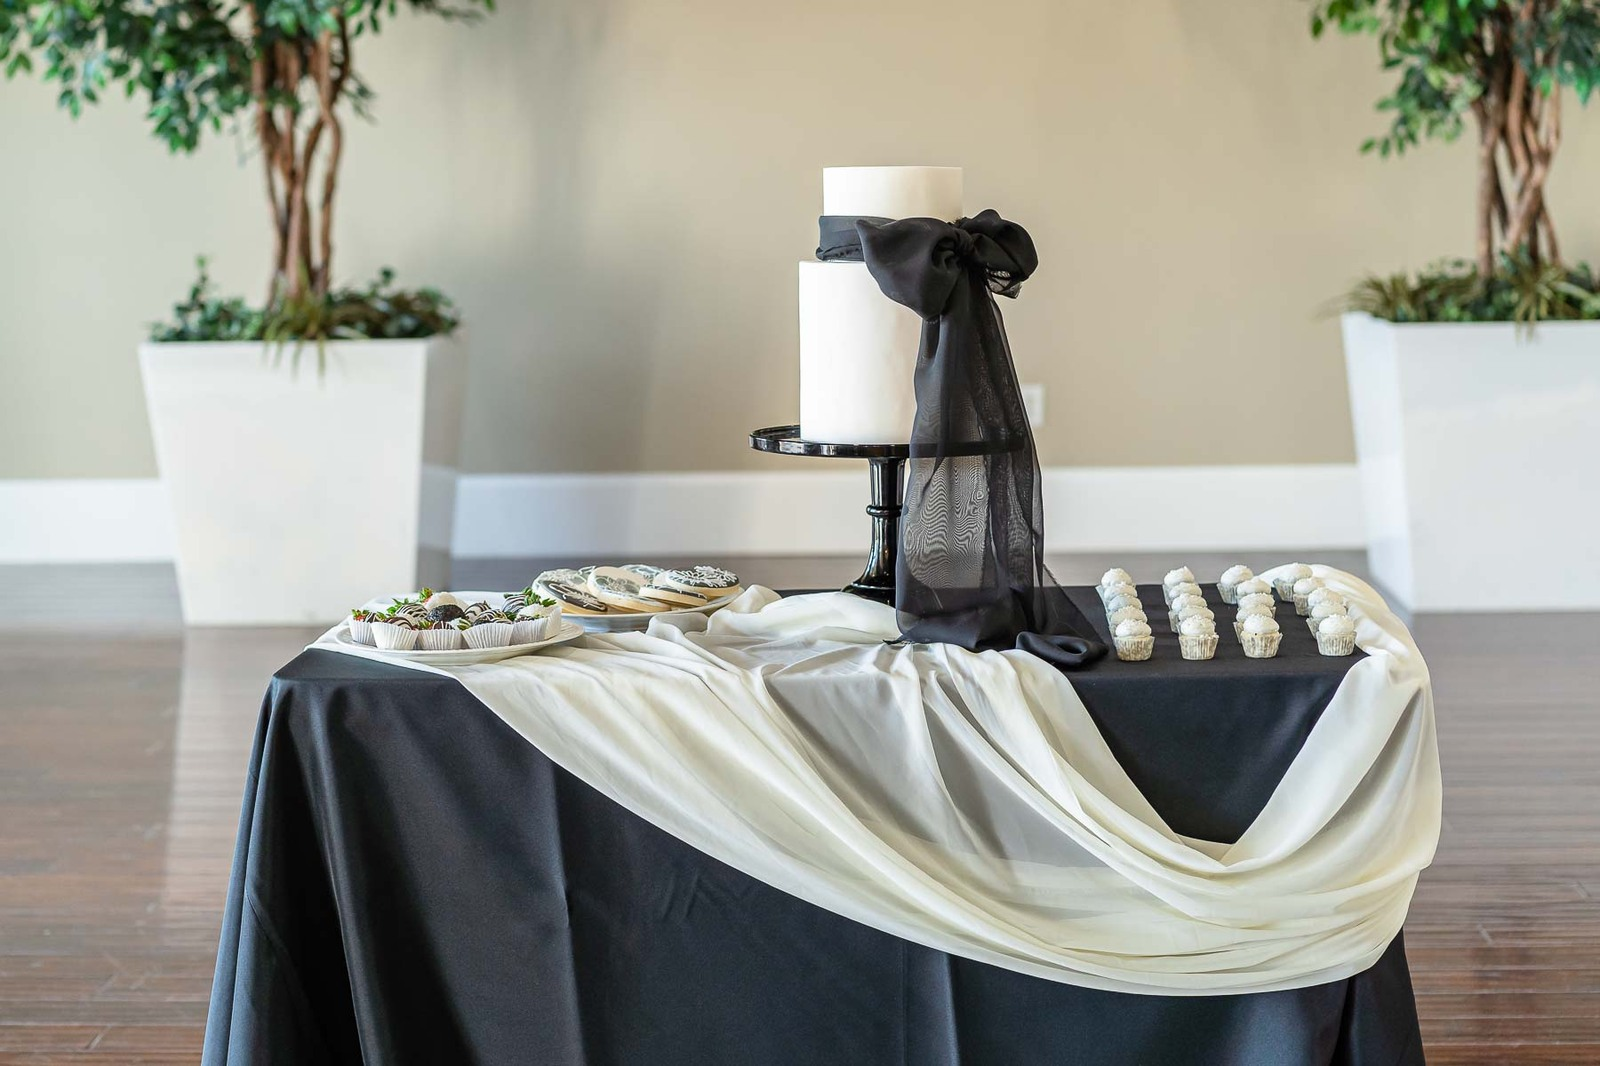 White wedding cake with black bow on table with pastries